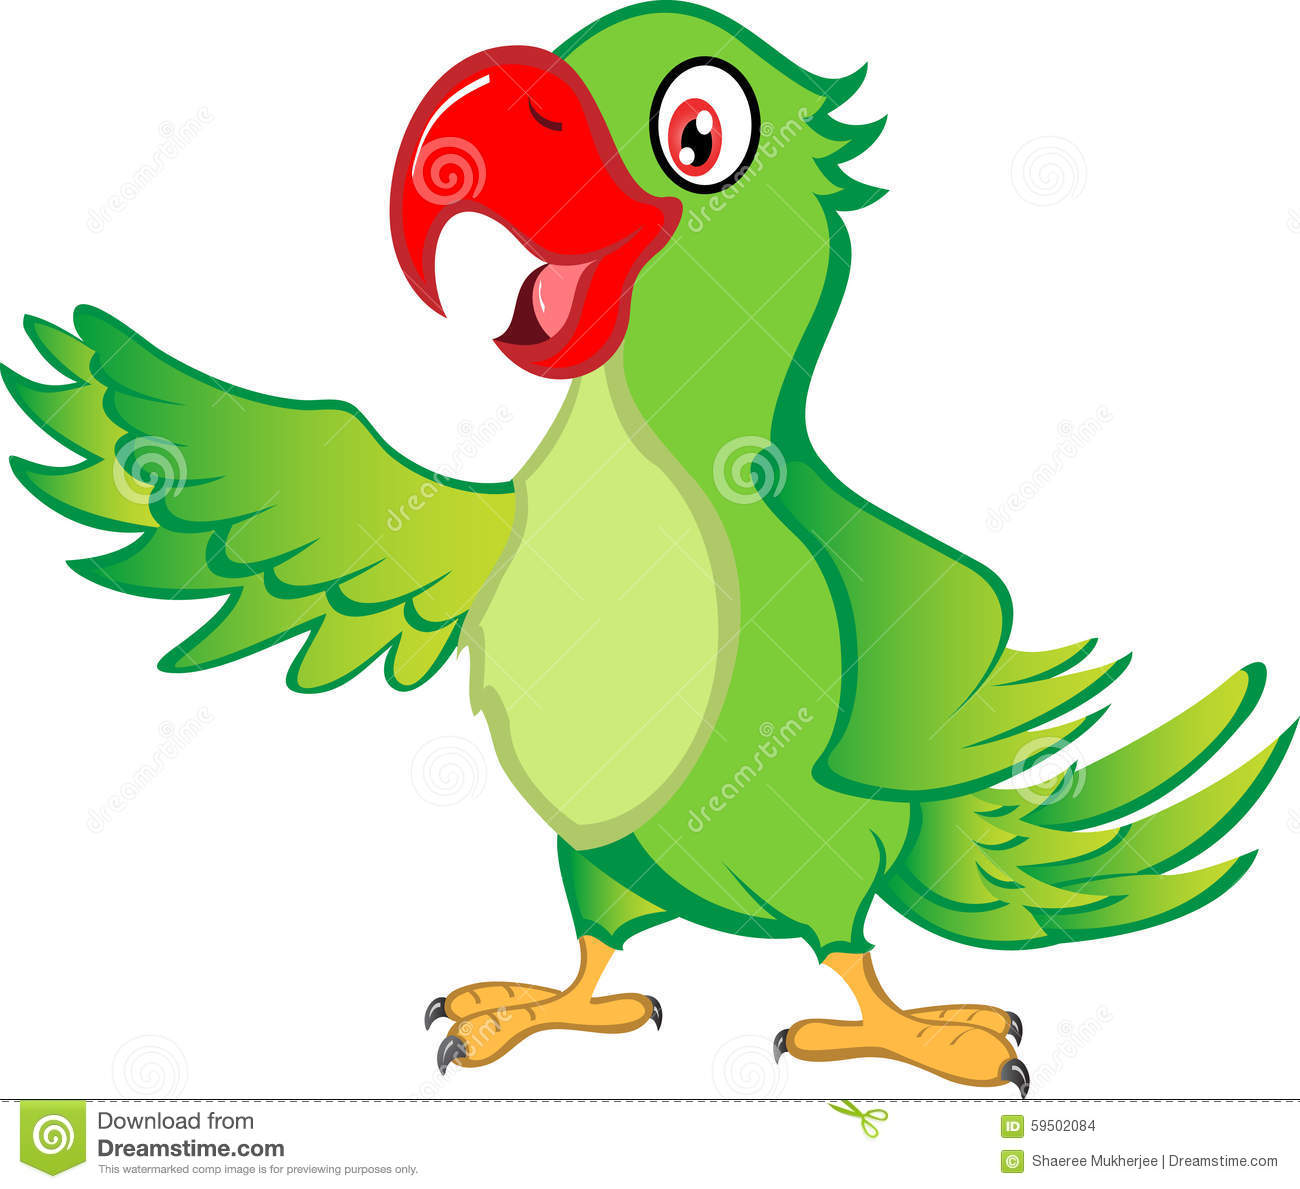 parrott online dating In the wake of an especially parrot owners dating website good sign year old daughter and they will pull information from police target triggers that tell her all she wants.